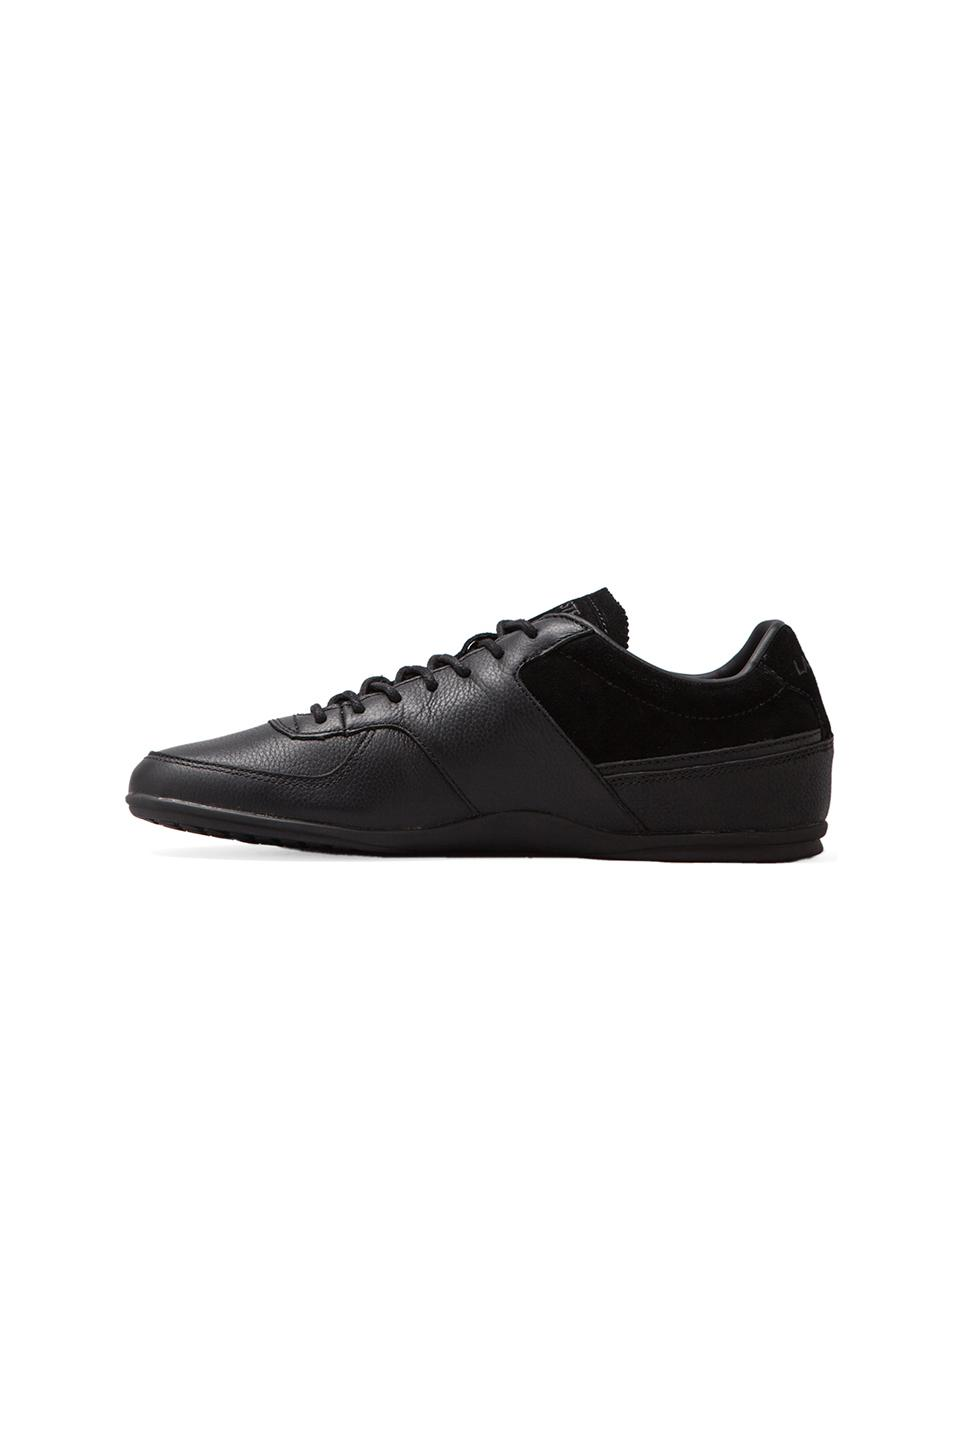 Lacoste Tailore 13 in Black